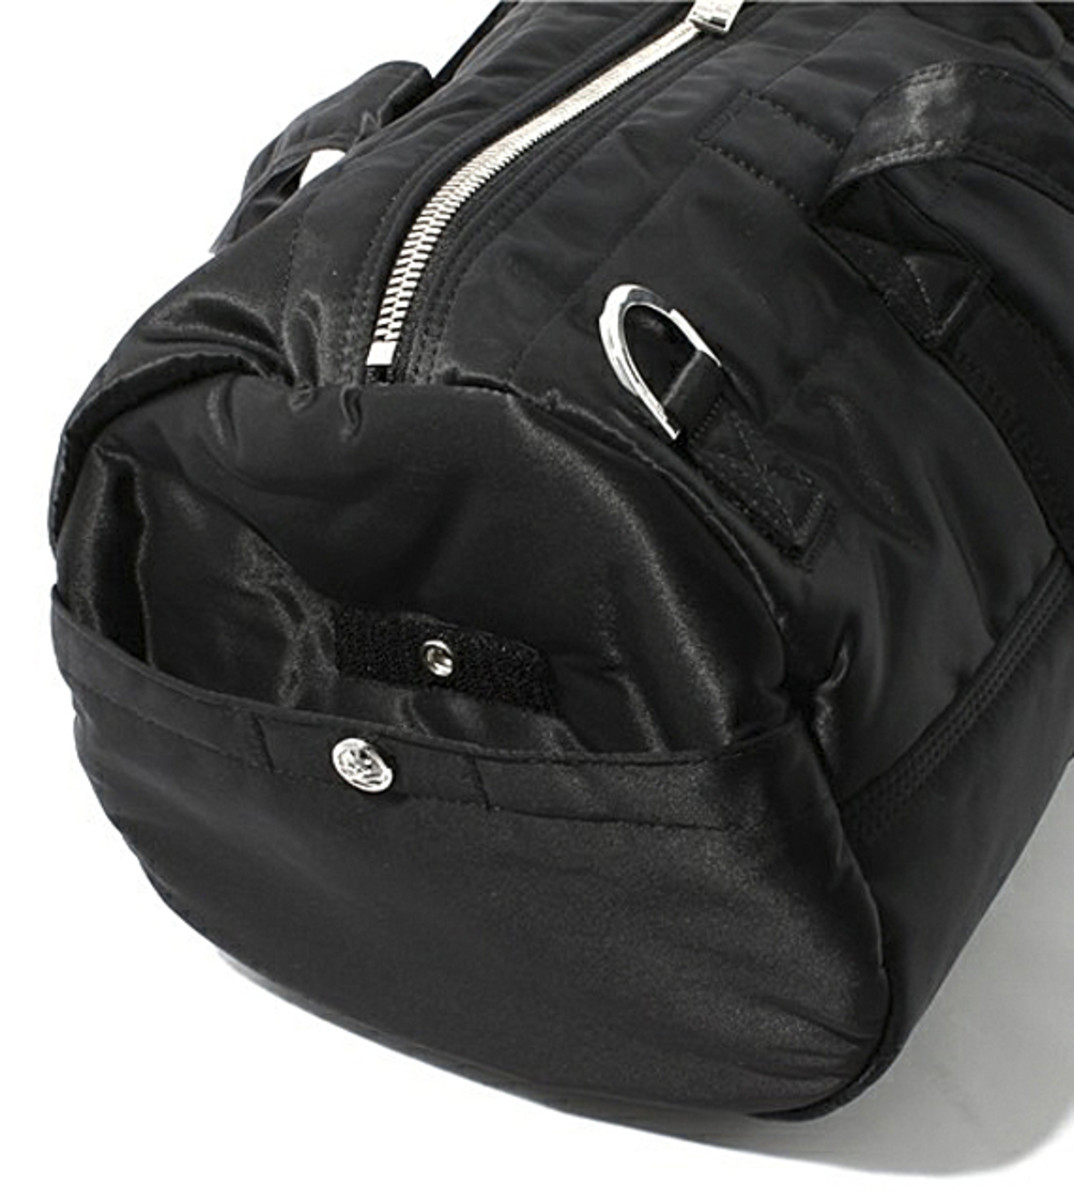 mastermind-JAPAN-PORTER-Drum-Boston-Bag-07